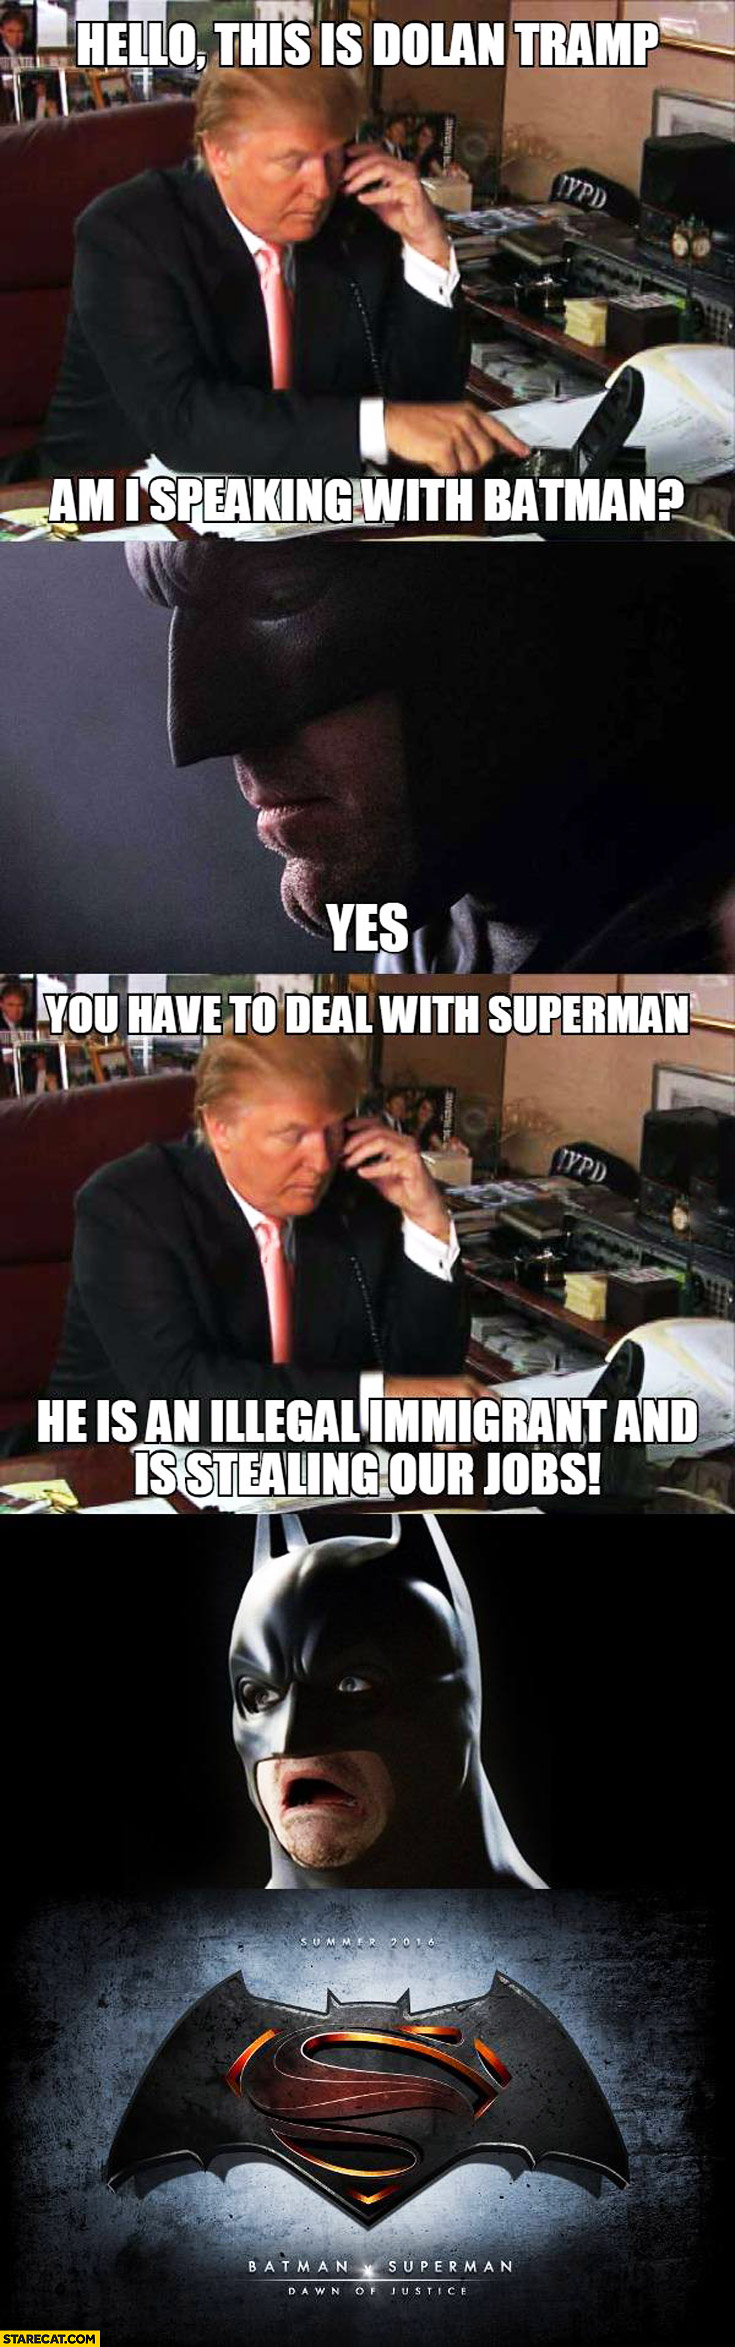 Hello this is Donald Trump am I speaking with Batman? You have to deal with Superman he is an illegal immigrant and is stealing our jobs. Dawn of Justice